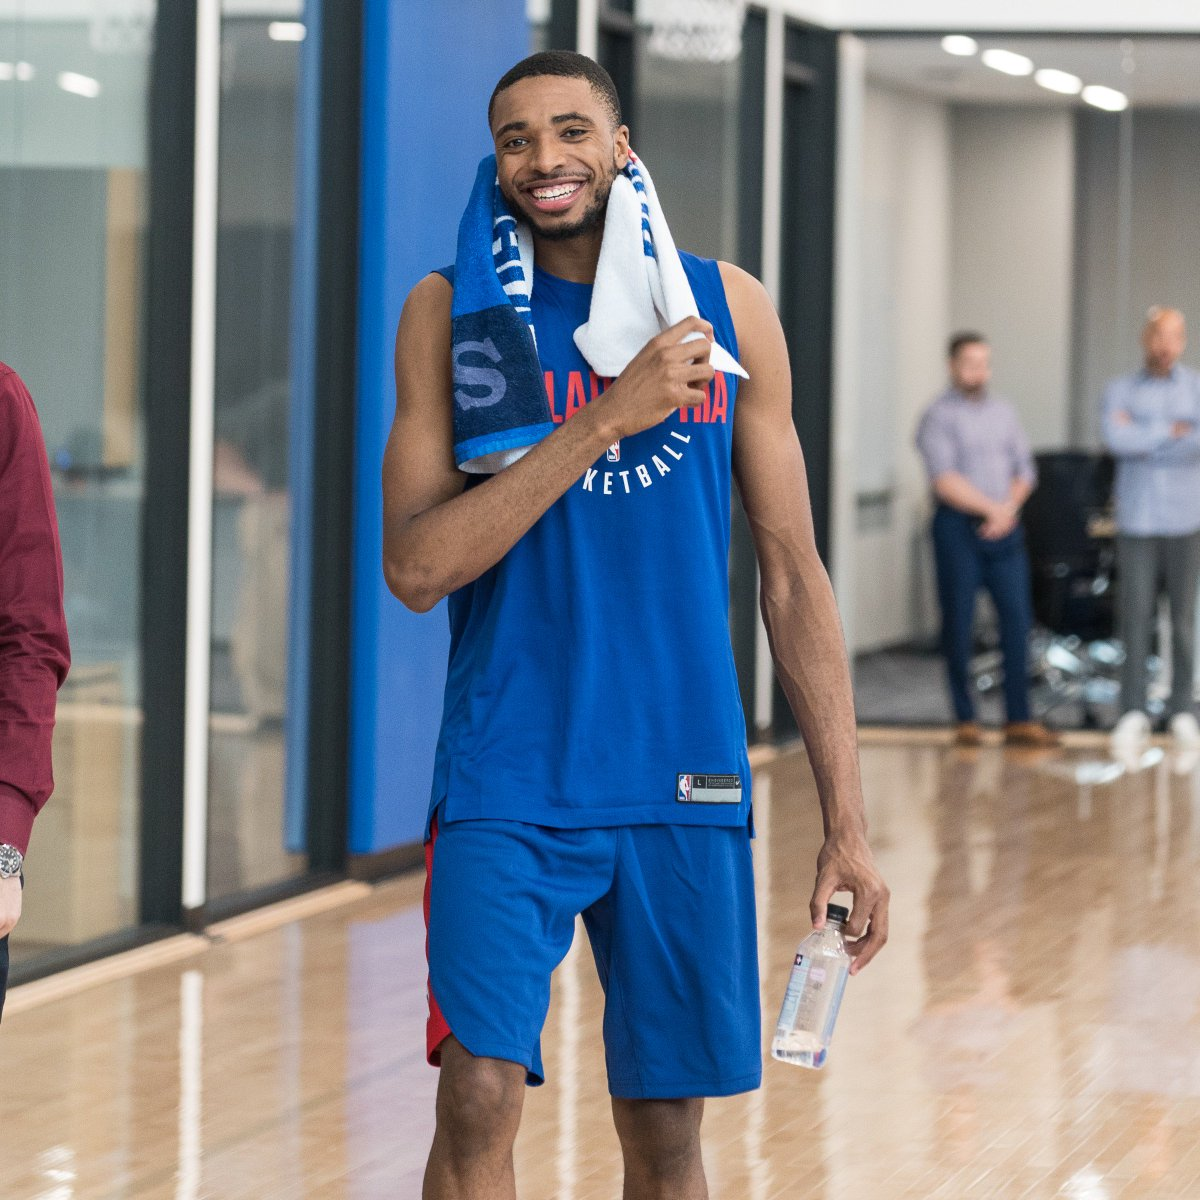 Inside our pre-draft workout with @NovaMBBs @mikal_bridges. 📸 » sixe.rs/mikal | #Summer76